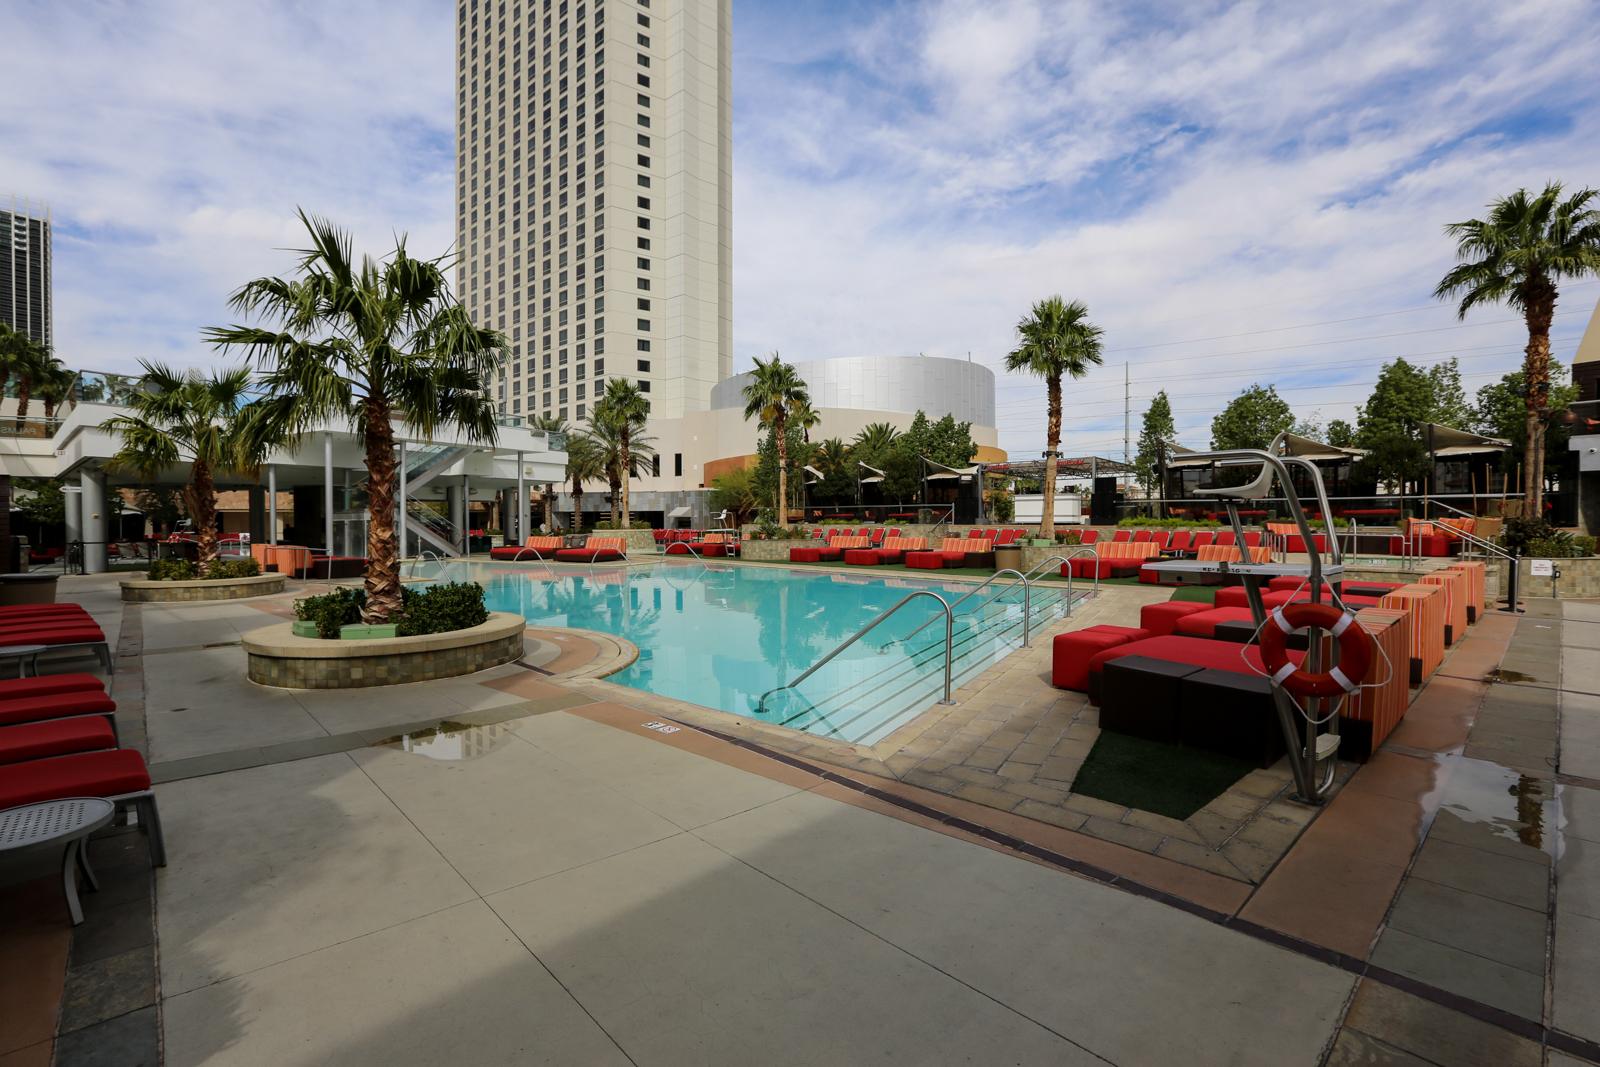 Palms casino and hotel